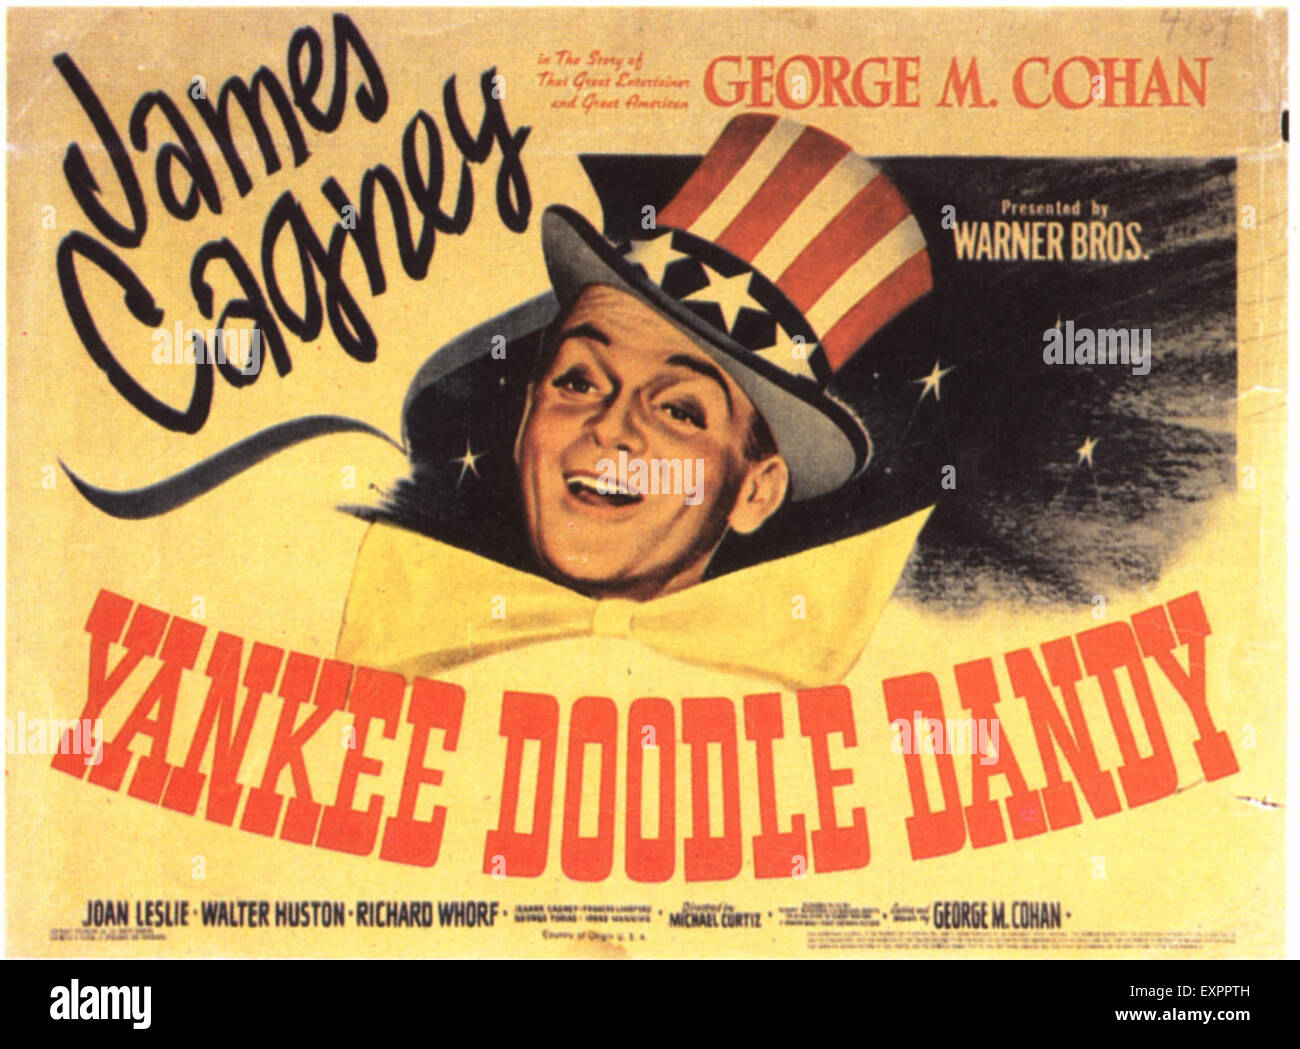 1940 USA Yankee Doodle Dandy affiche de film Photo Stock